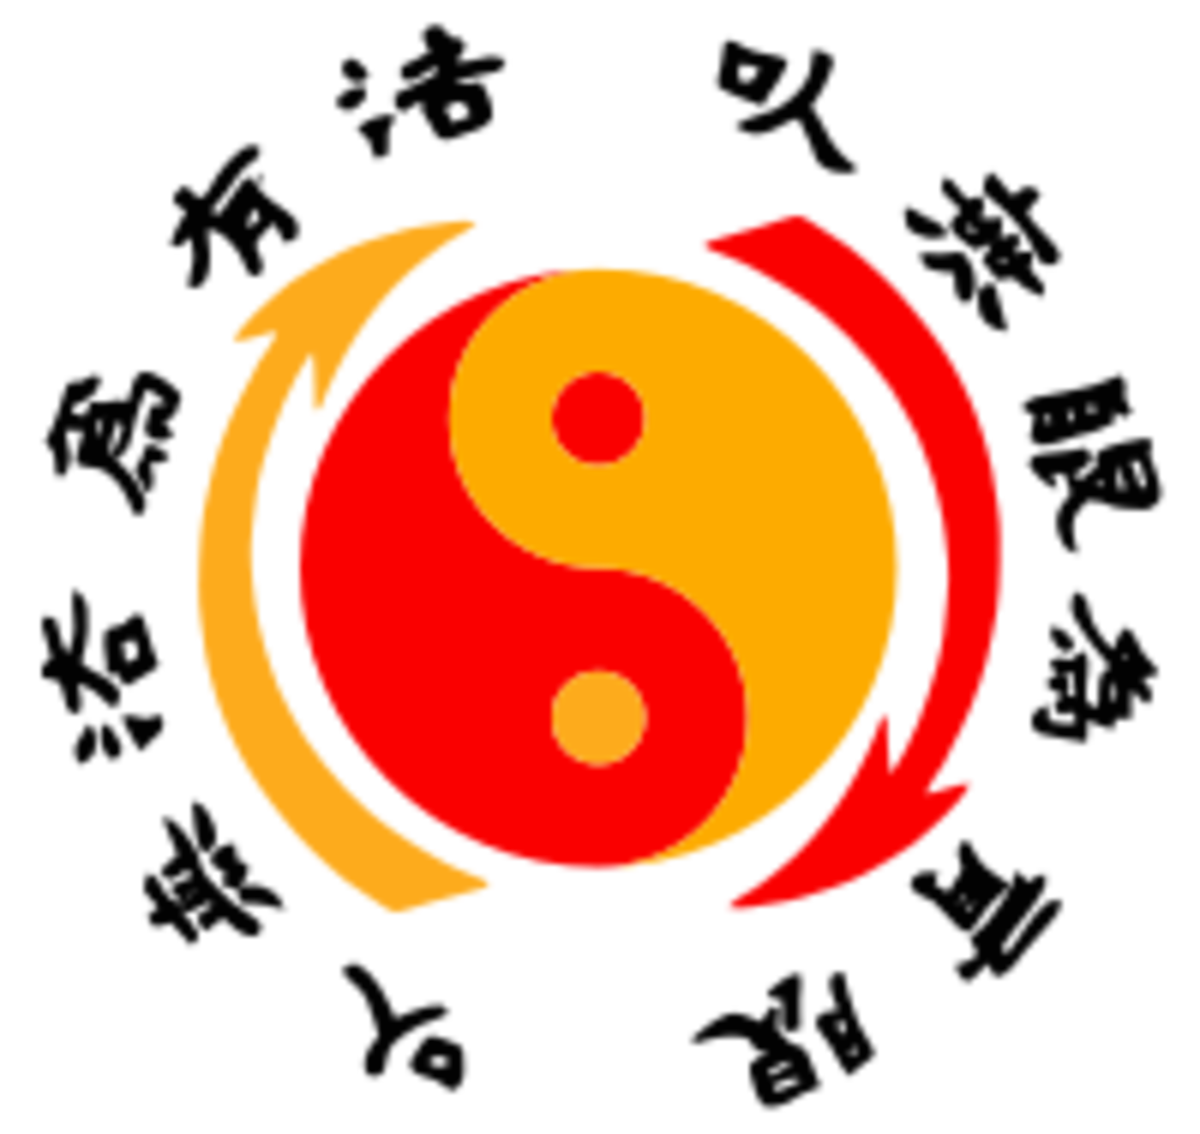 Jeet Kune Do symbo - the arrows represent the endless interaction between yang and yin.